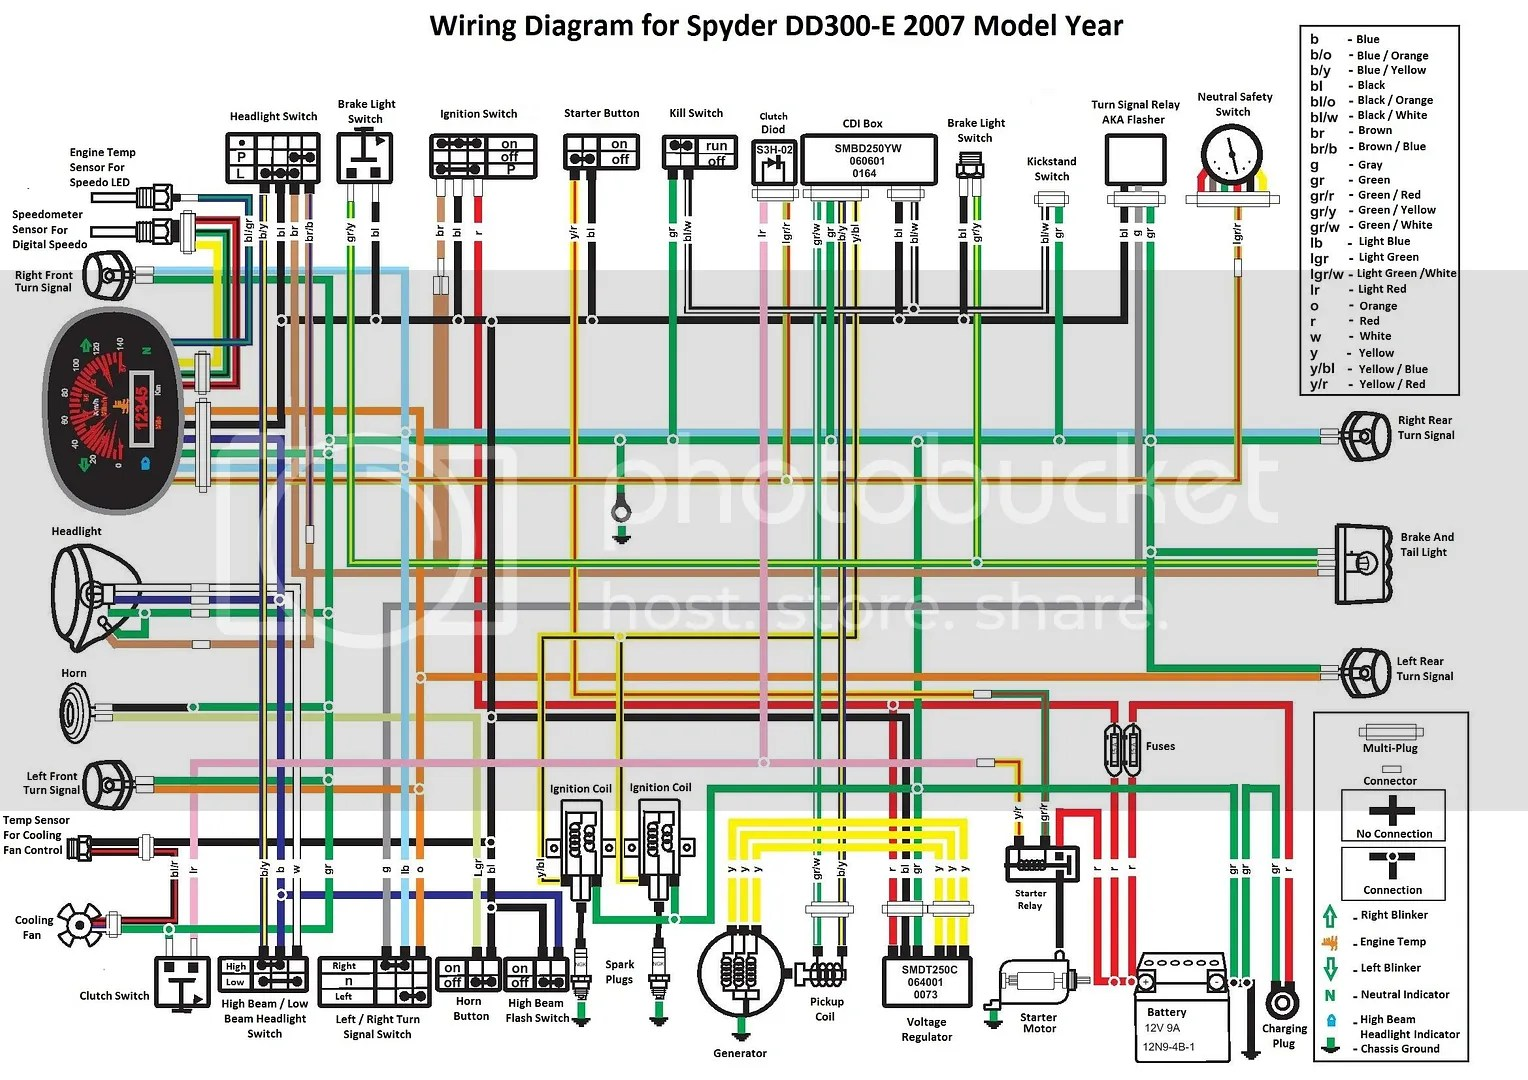 NEWWIRINGDIAGRAM page 001 1?resize=665%2C470 yamaha virago 250 wiring diagram the best wiring diagram 2017 yamaha virago 250 wiring diagram at reclaimingppi.co